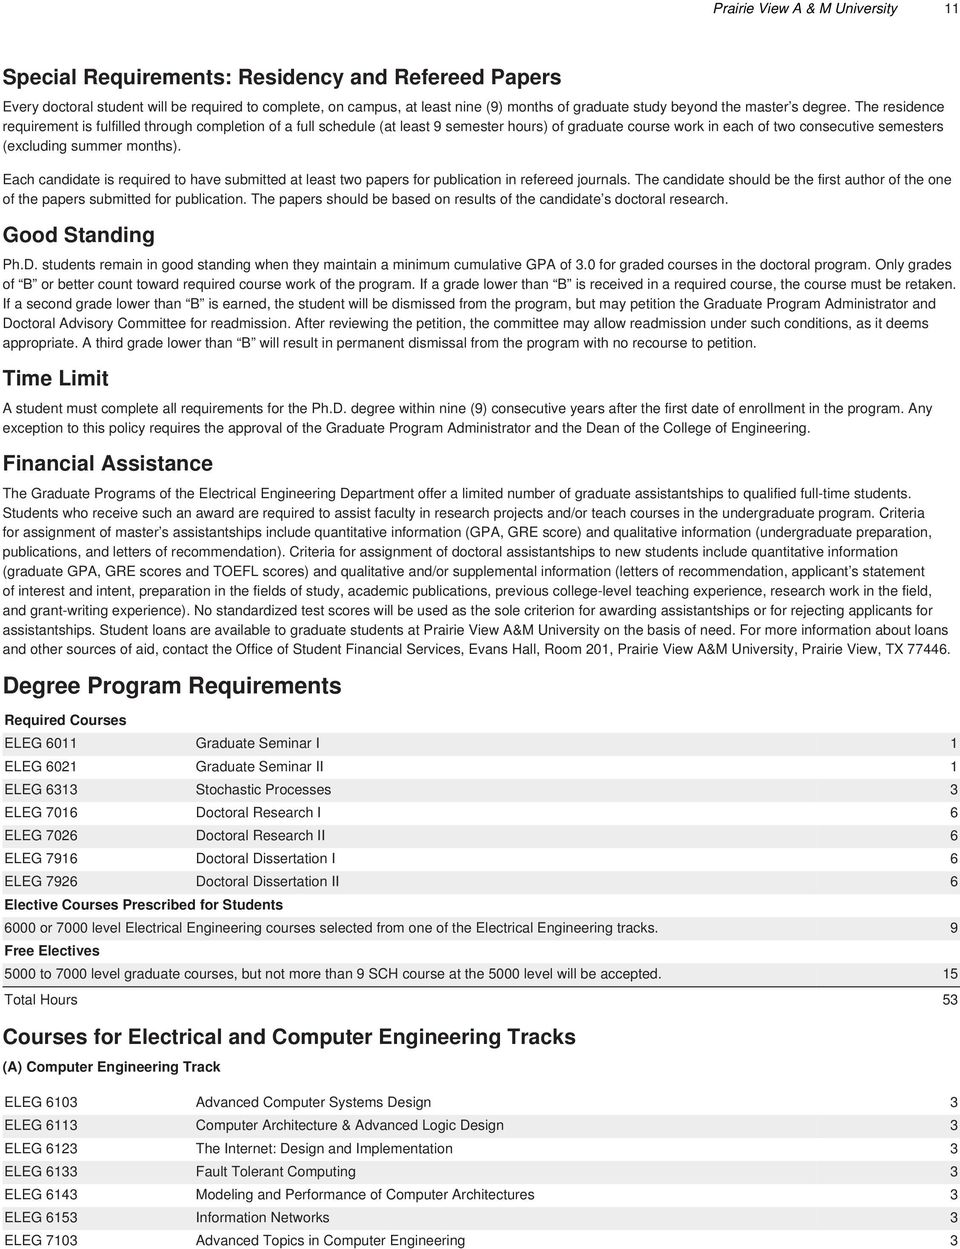 Electrical And Computer Engineering Pdf With An Understanding Of This First Requirement Electric The Residence Is Fulfilled Through Completion A Full Schedule At Least 9 Semester